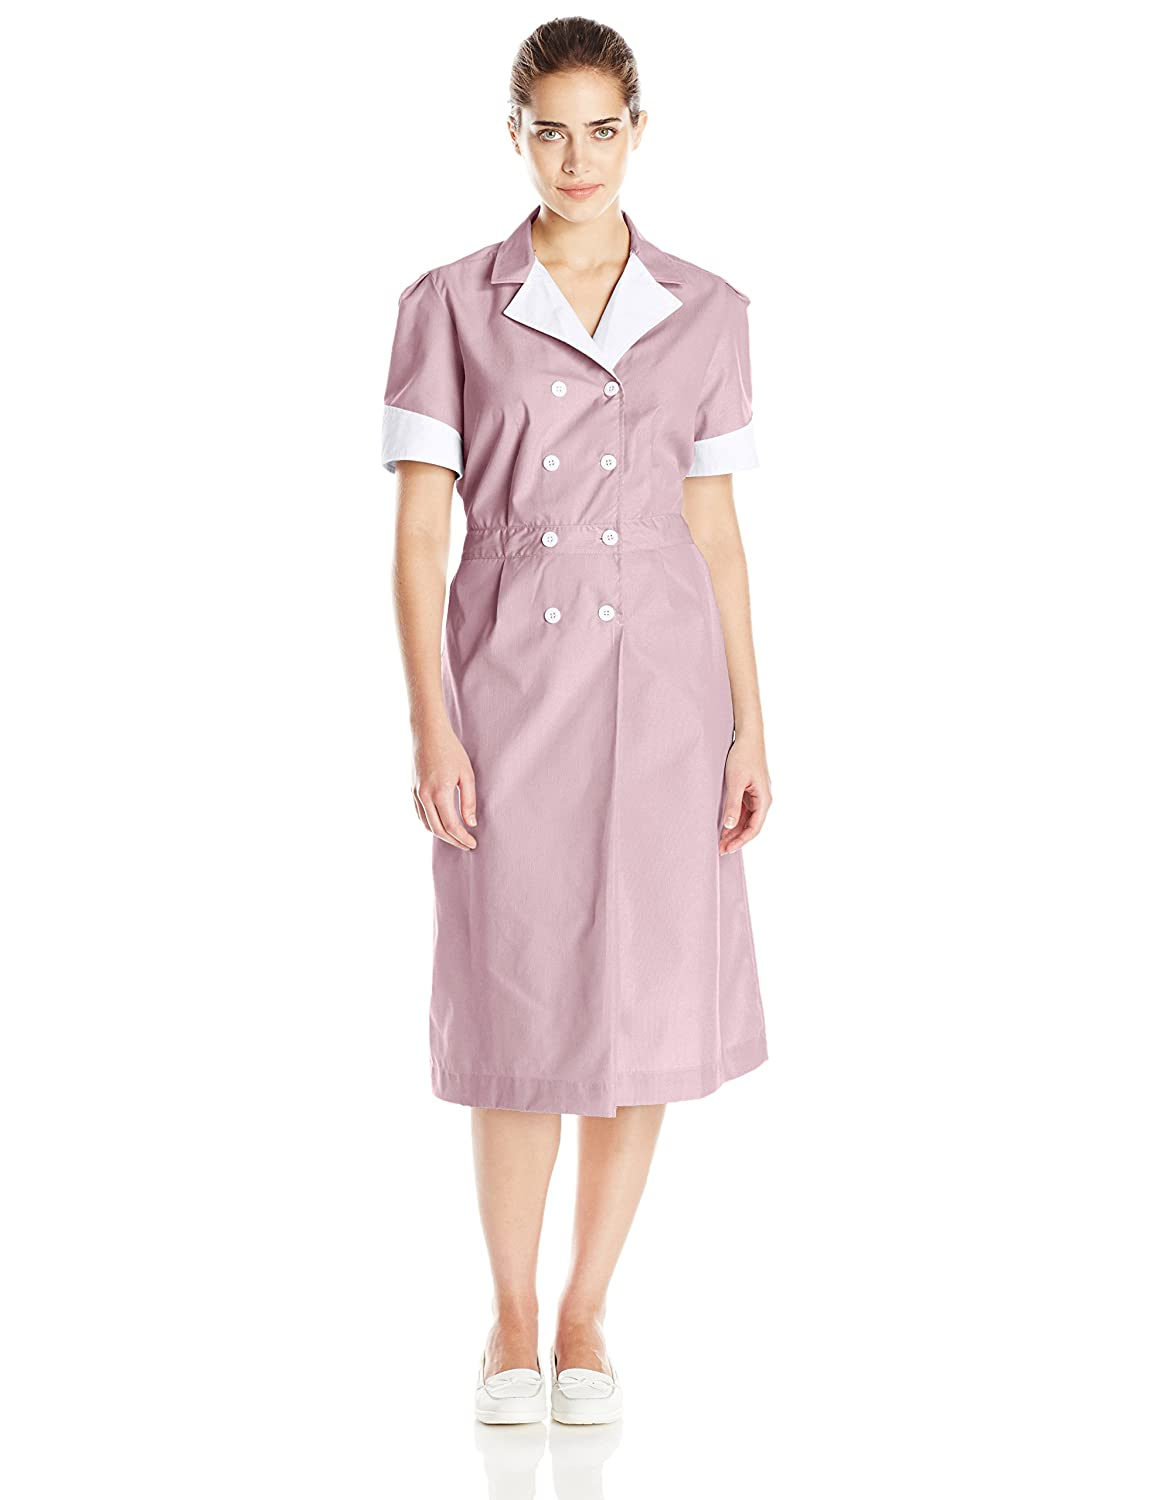 1940s Dresses | 40s Dress, Swing Dress Red Kap Womens Lapel Dress $71.59 AT vintagedancer.com